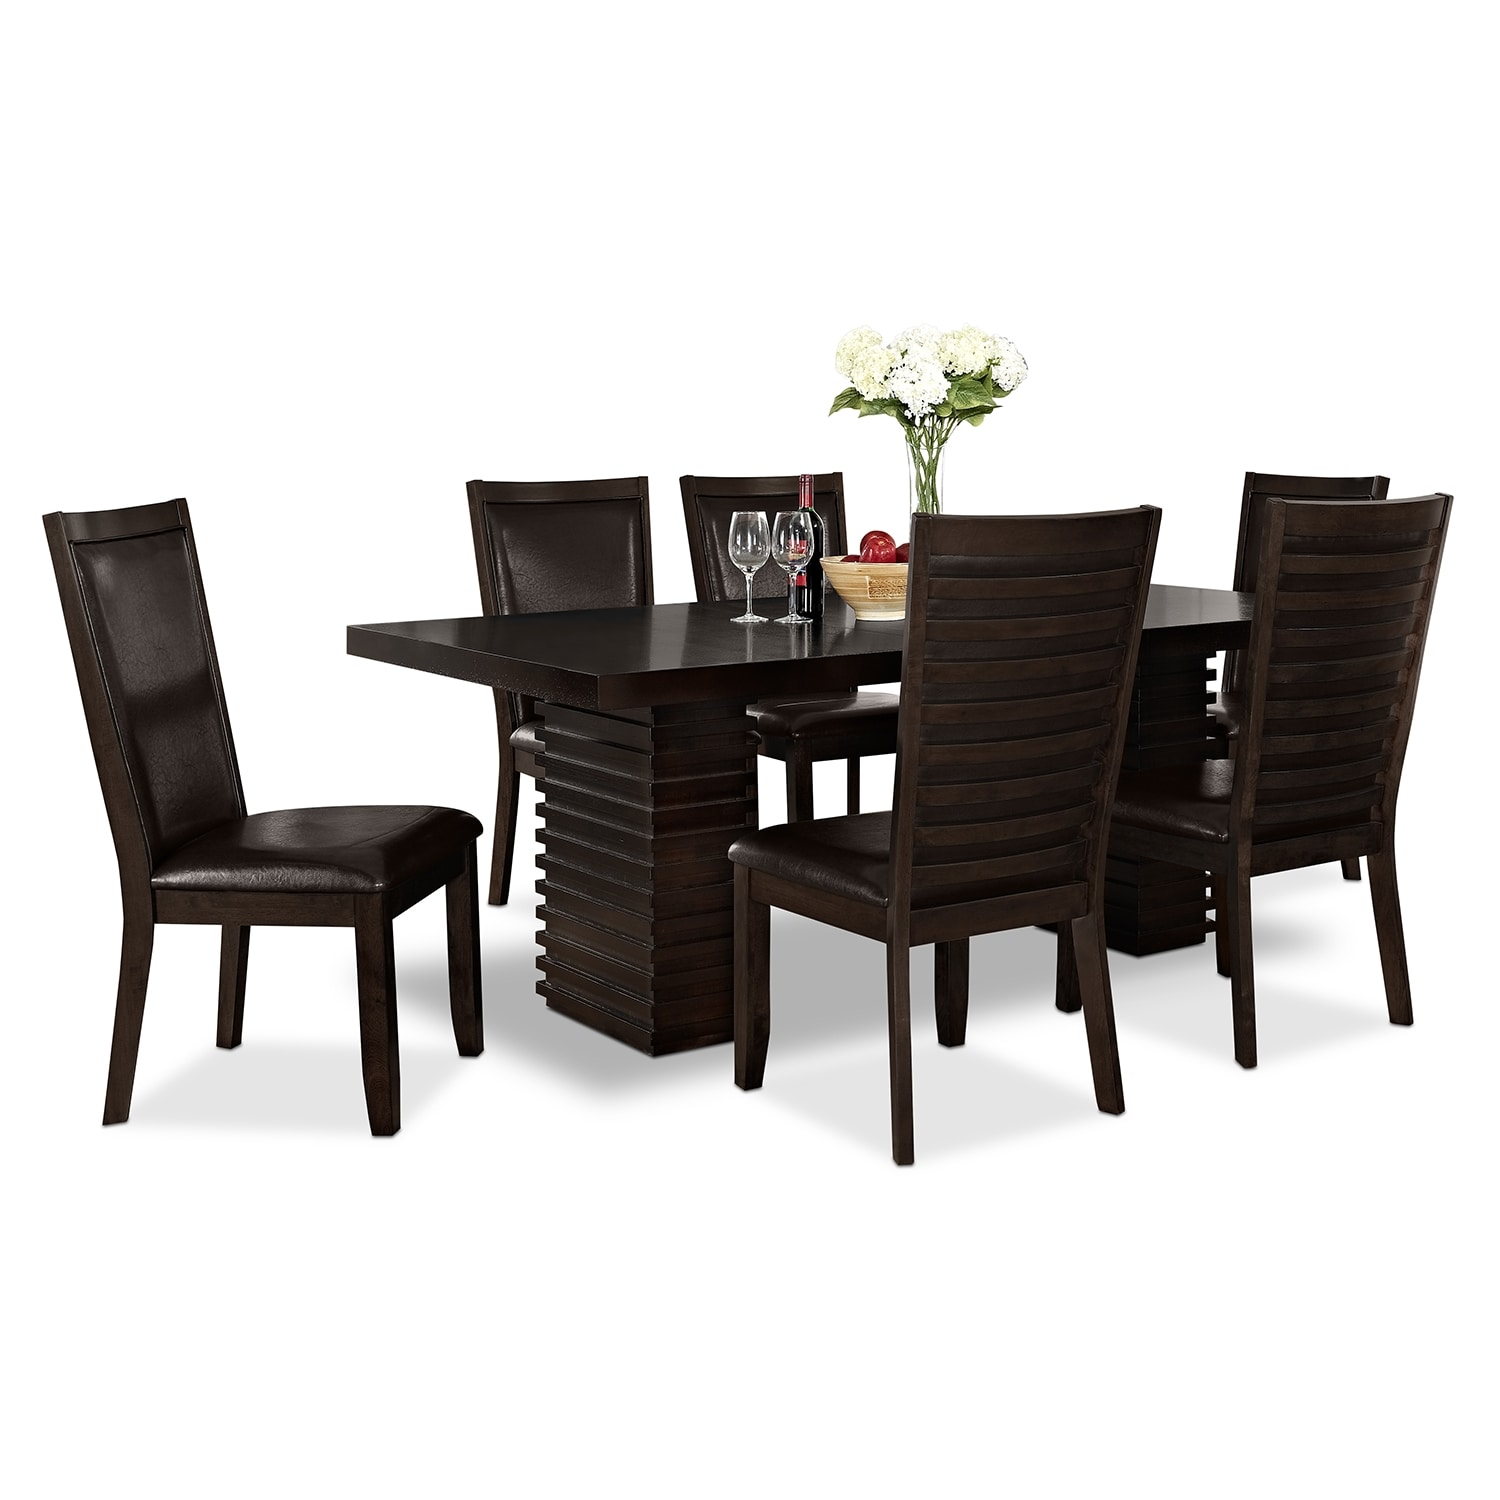 American signature dining room sets for Signature furniture